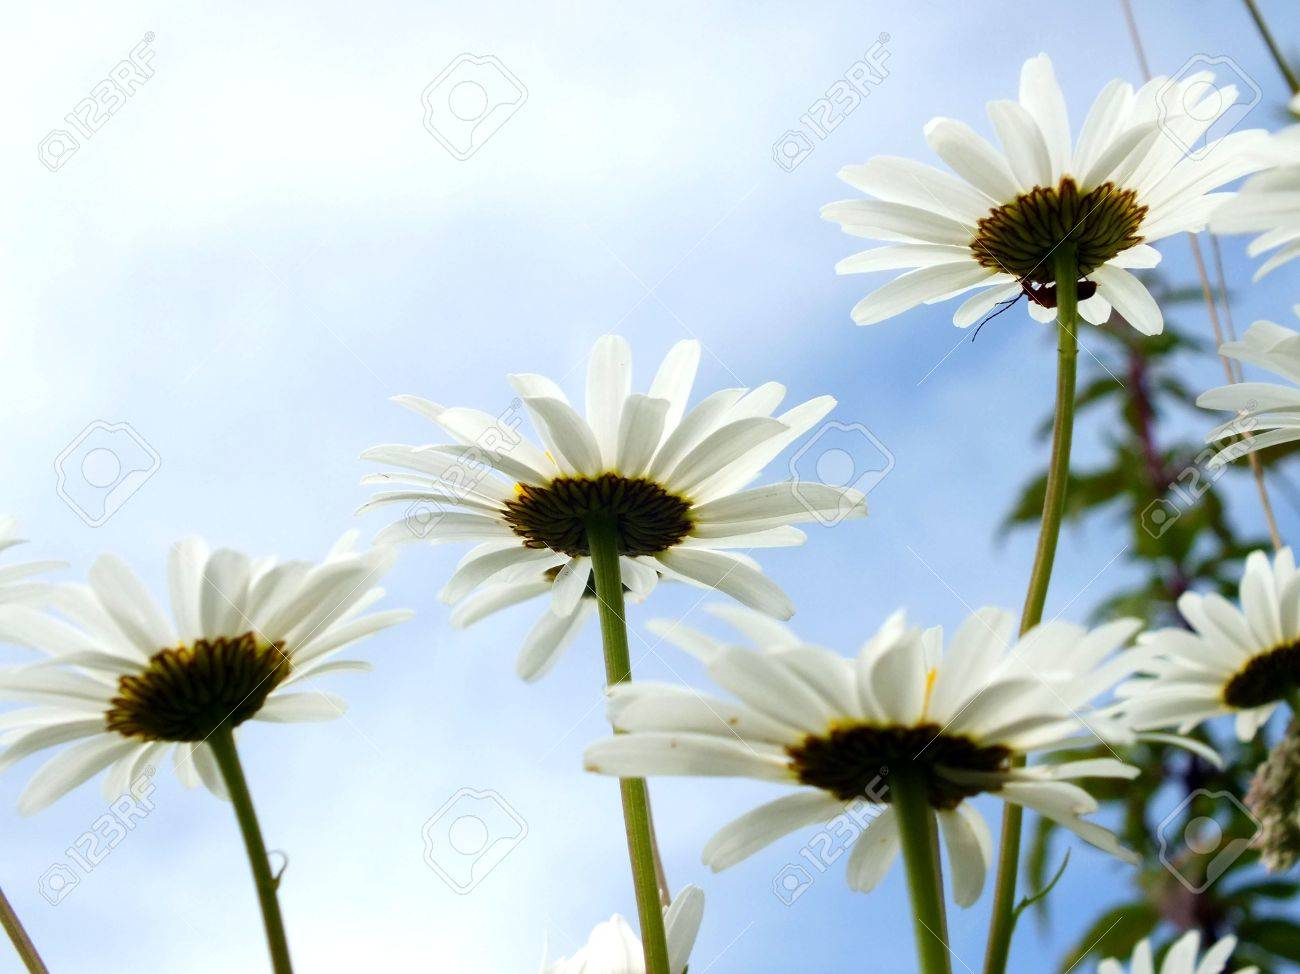 Daisy flowers dancing in the summer sunshine blue sky stock photo daisy flowers dancing in the summer sunshine blue sky stock photo 19474440 izmirmasajfo